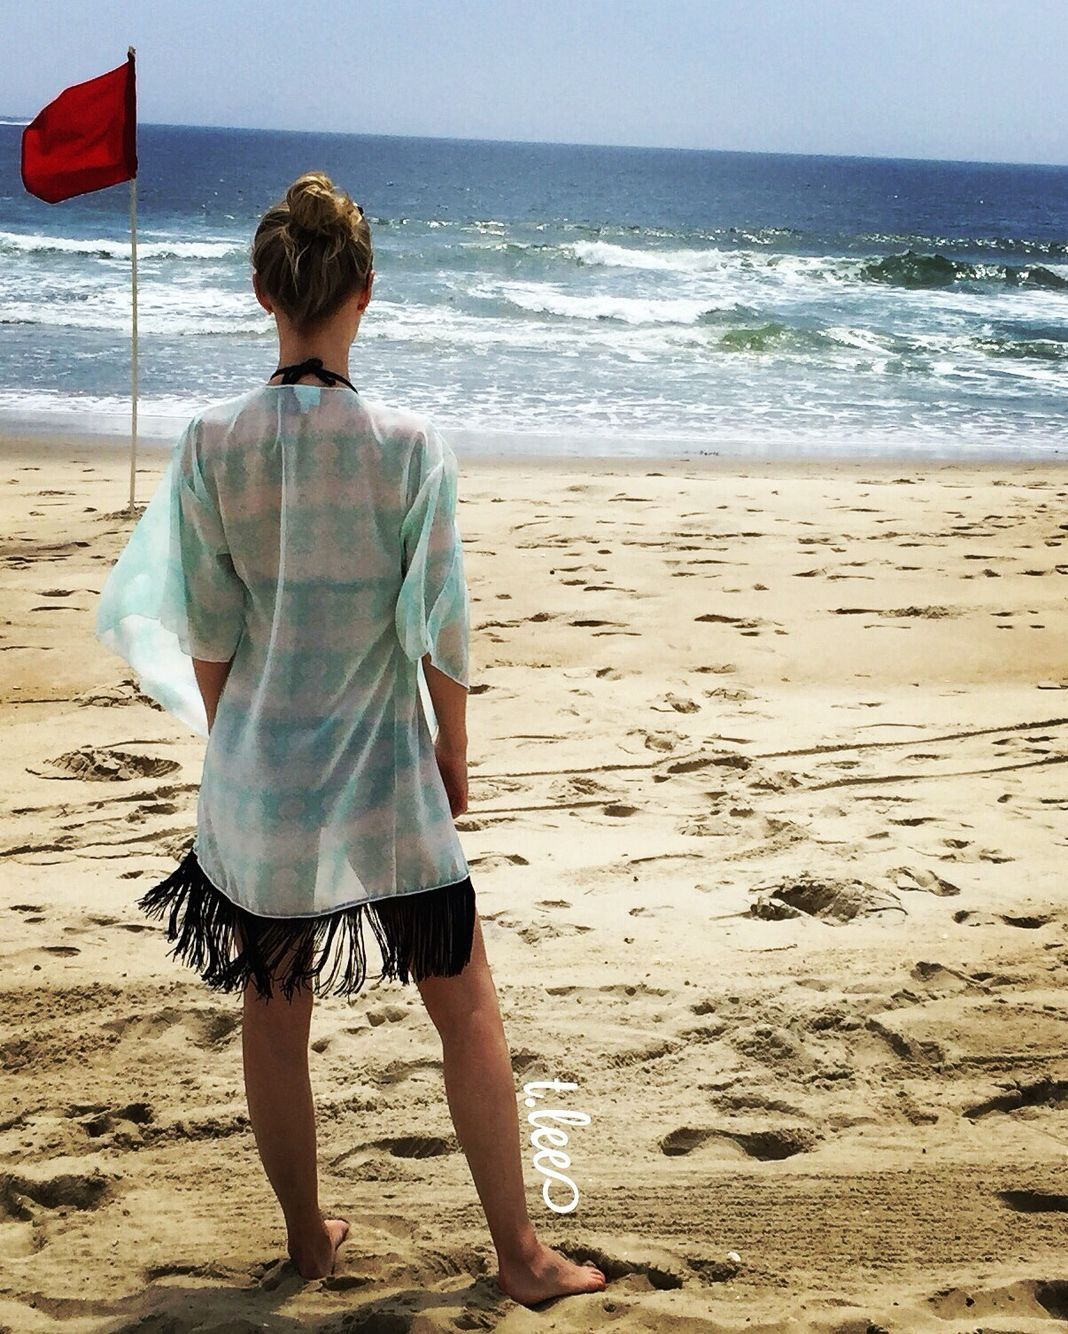 d9b62ab84e The LuLaRoe Monroe Kimono & the Beach - a match made in paradise. Monroes  make great bathing suit covers!